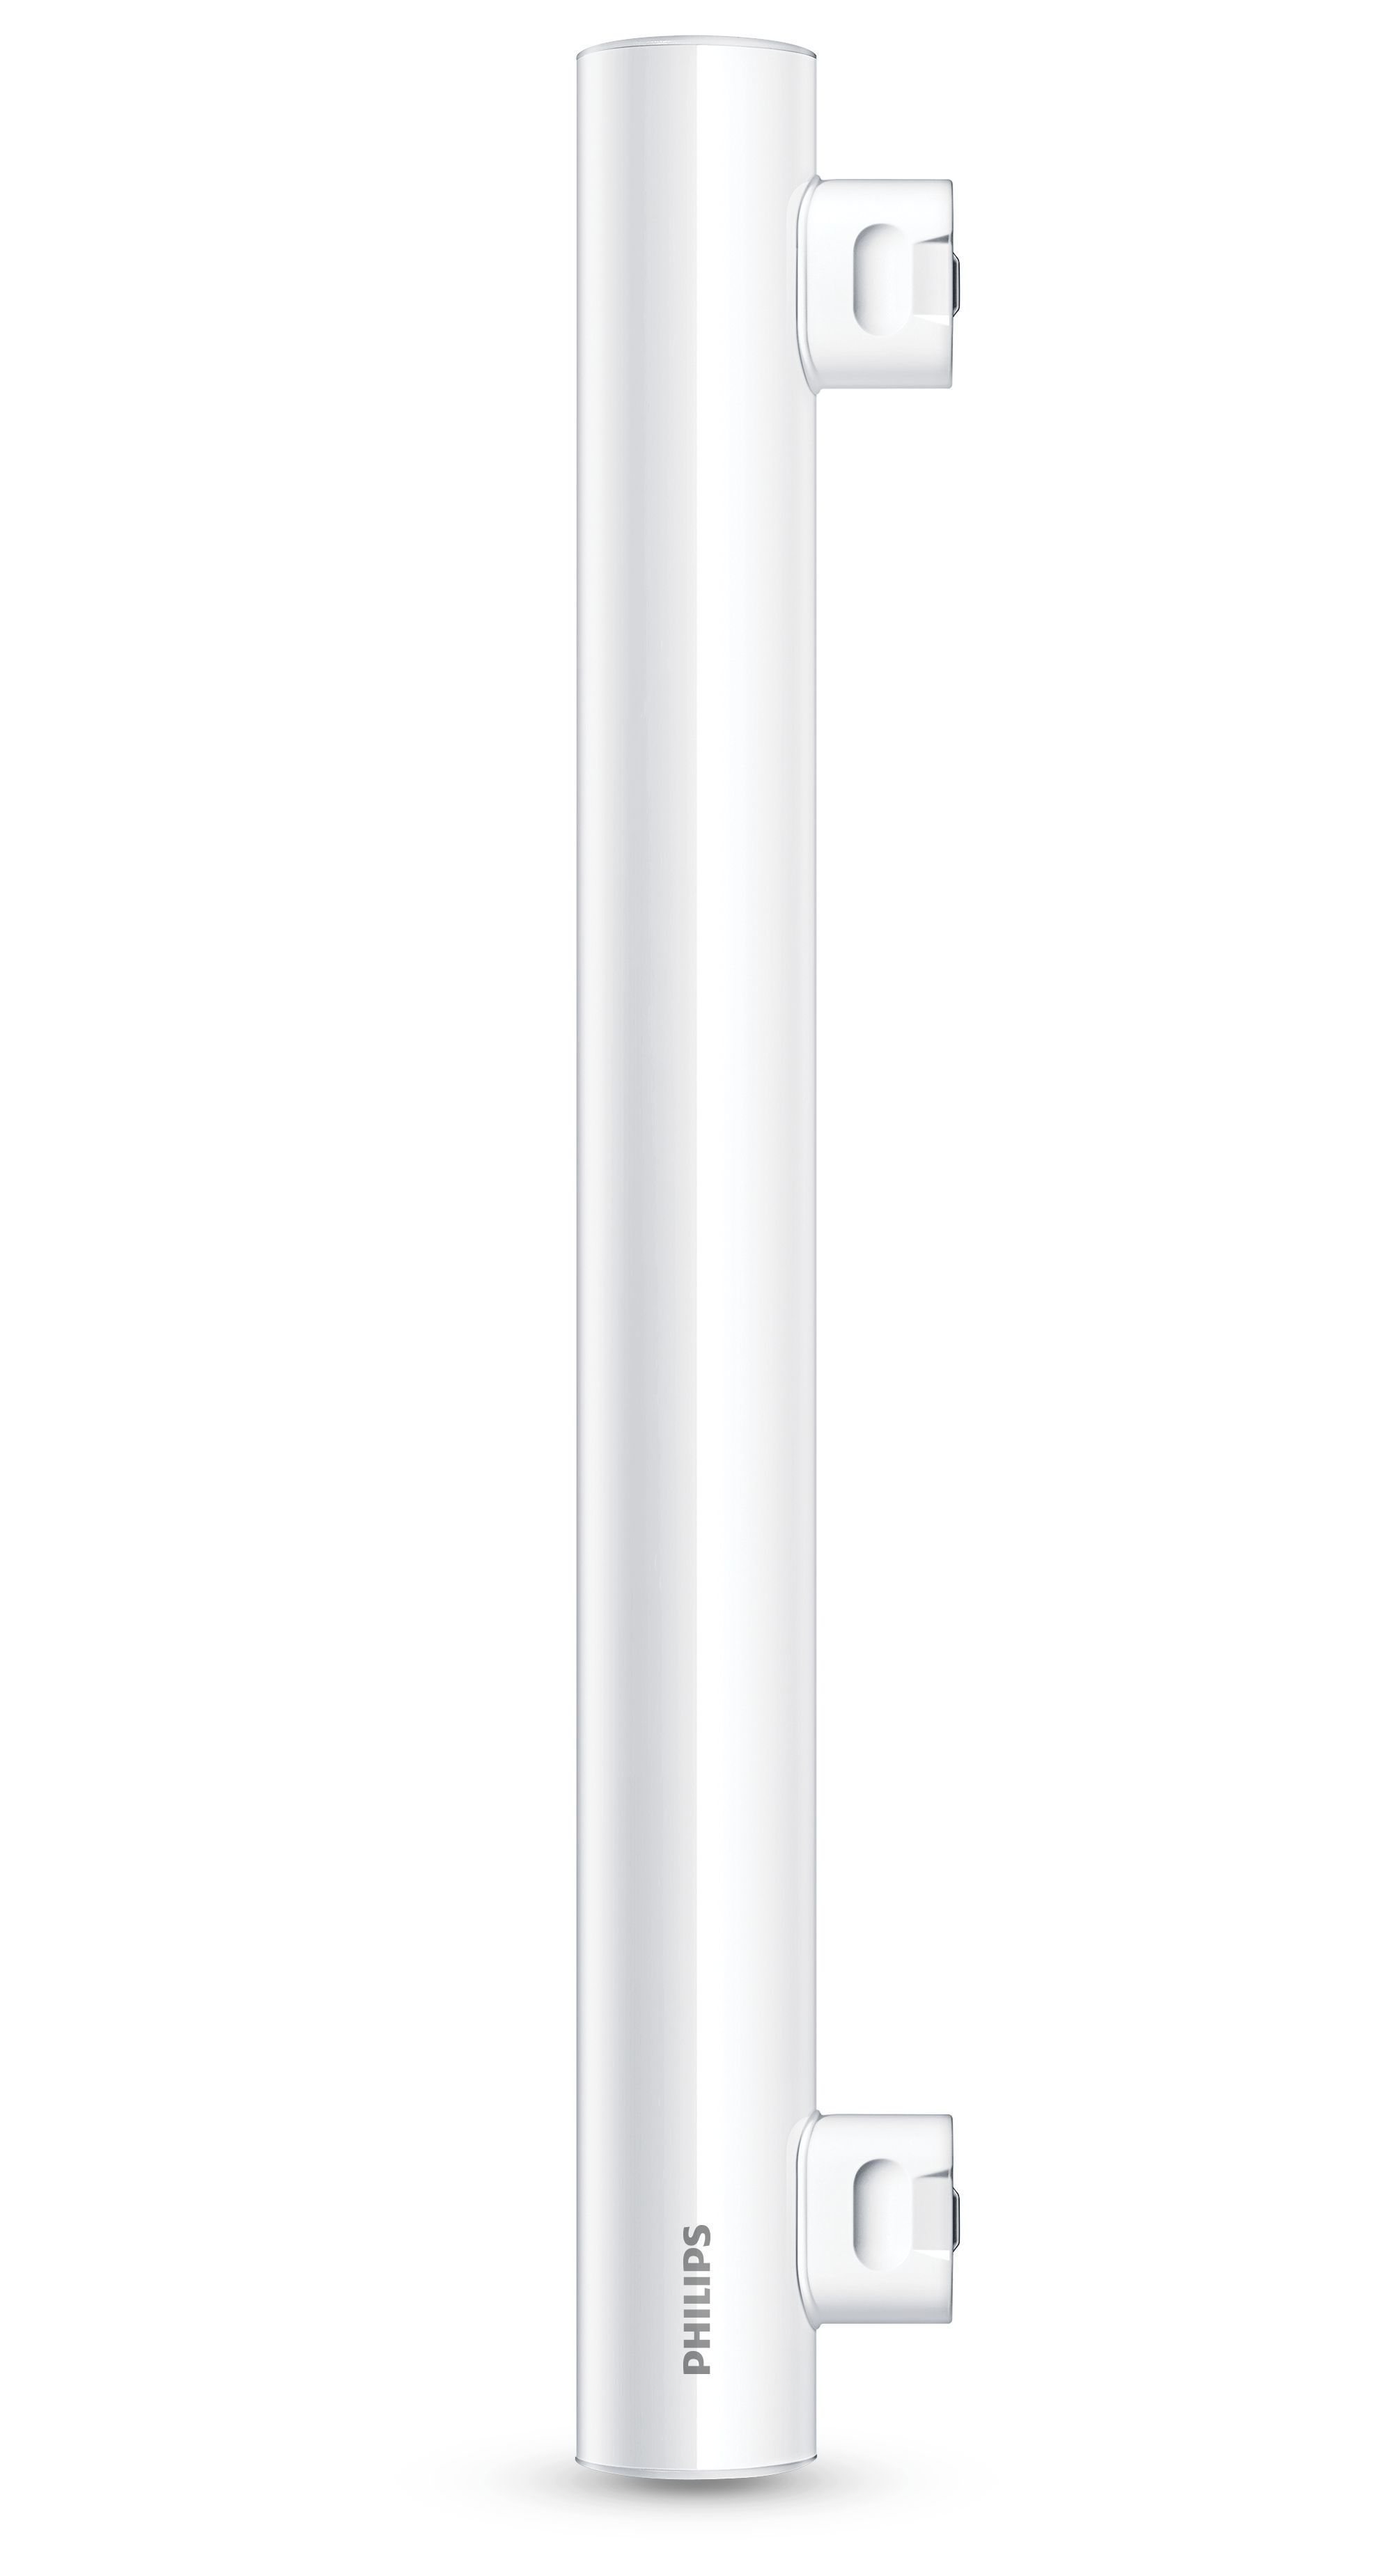 Philips - Lampadina a LED - Corephil35